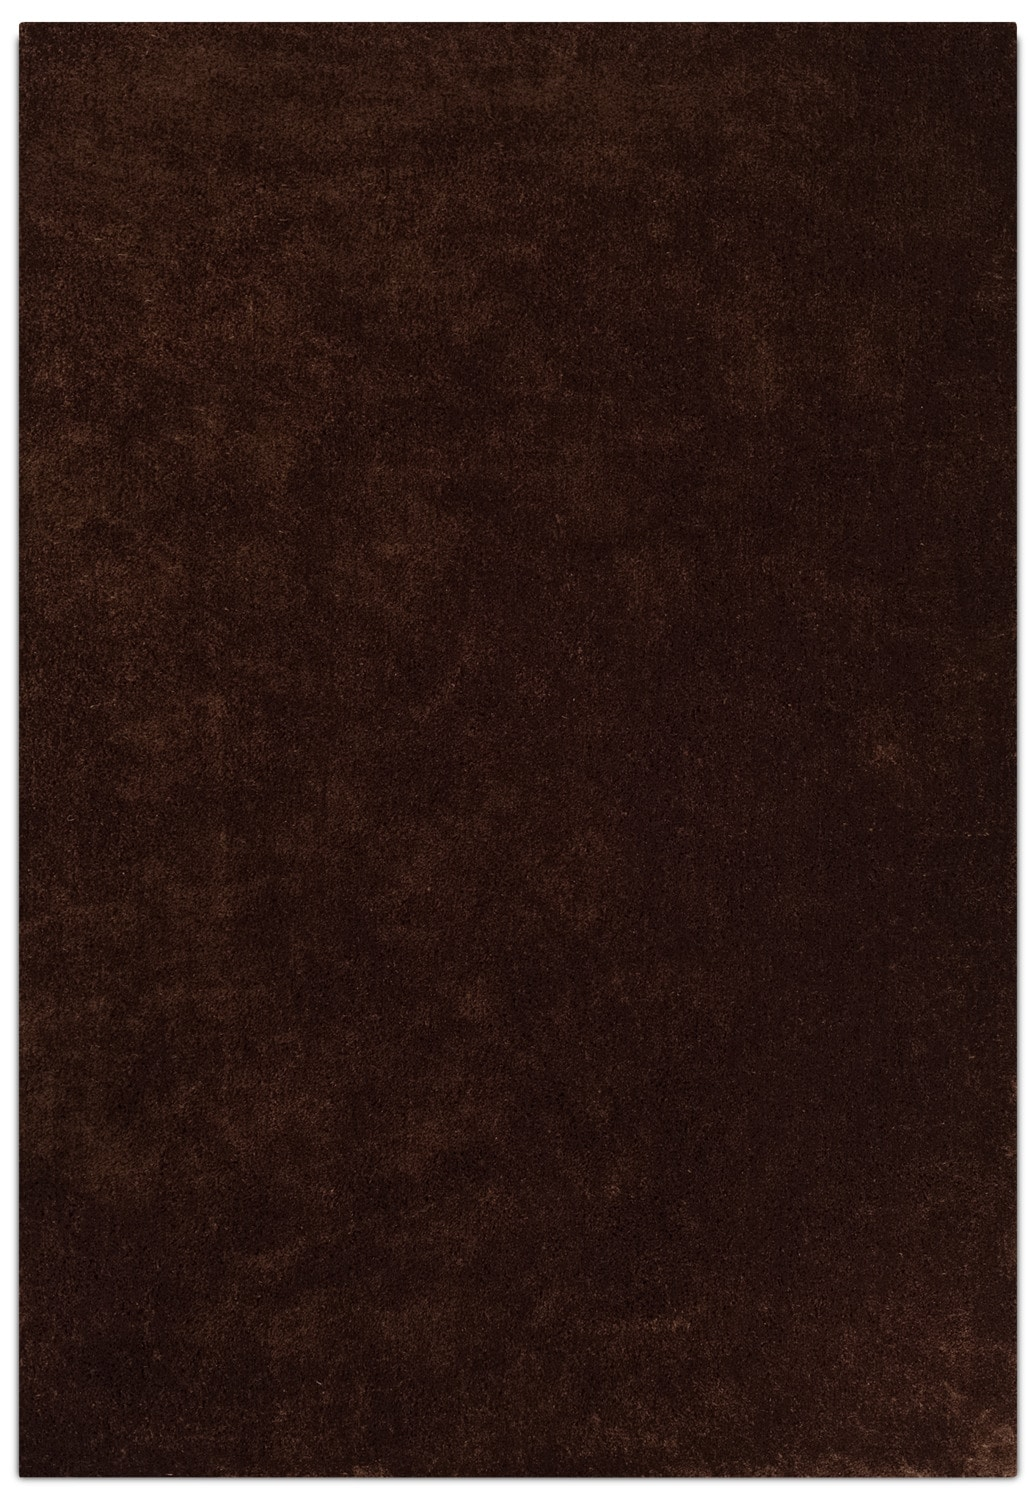 Accent and Occasional Furniture - Daisy 5' X 8' Area Rug - Brown